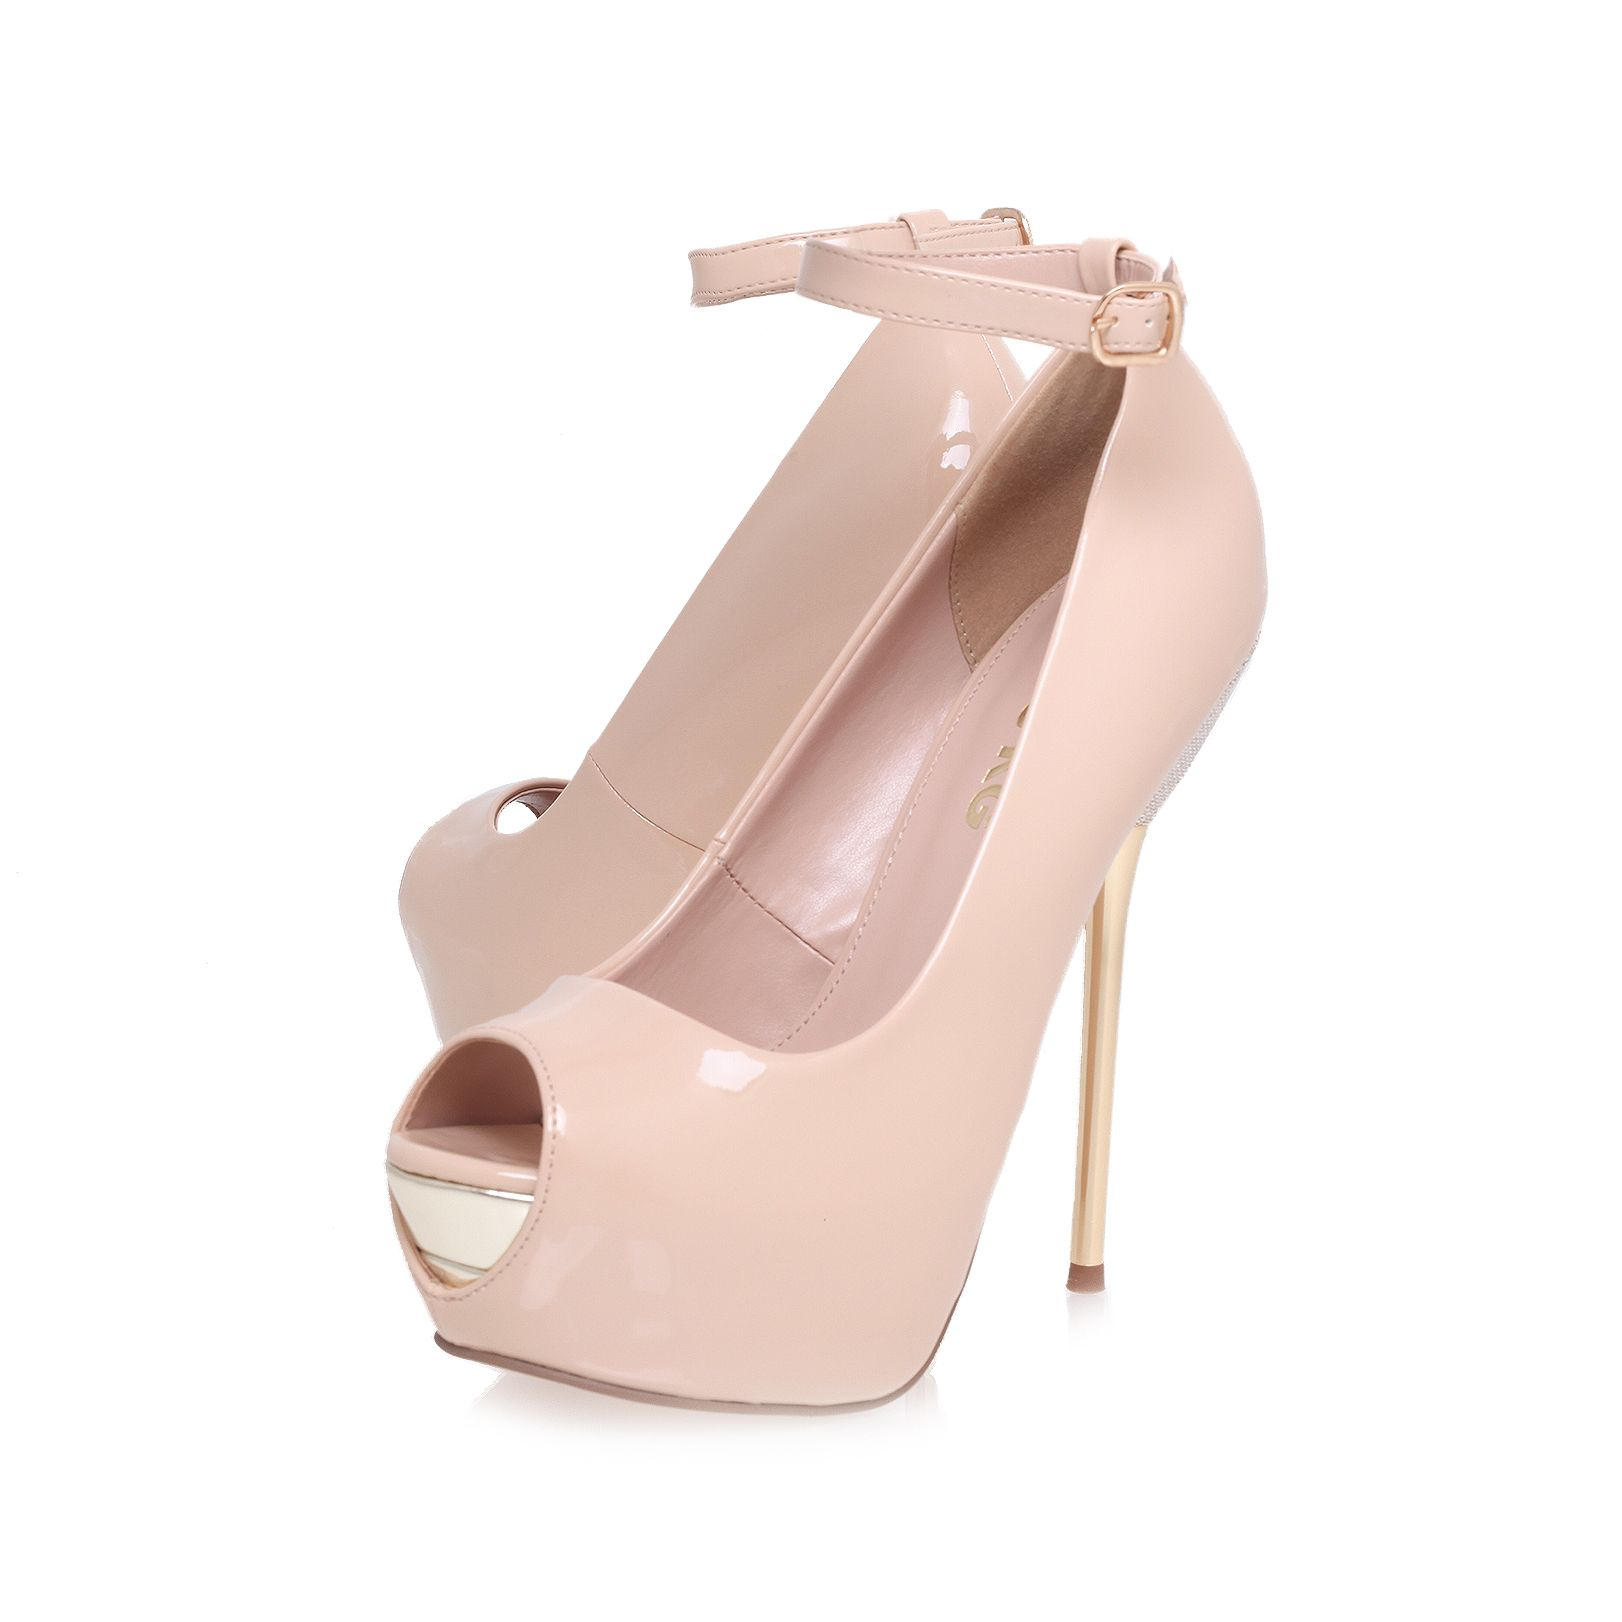 Effie high heel platform shoes